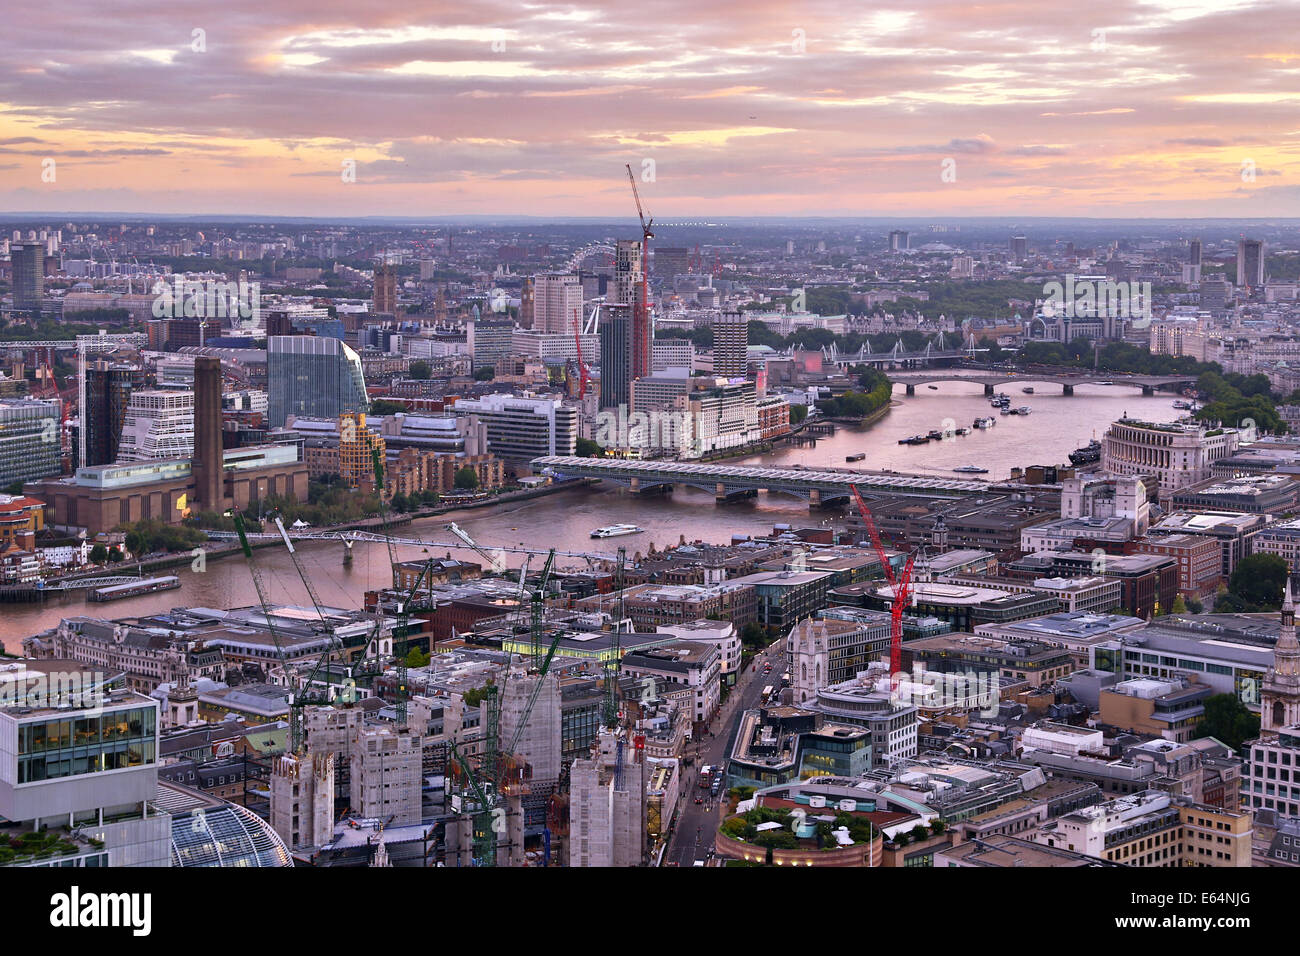 General view of buildings of the city skyline at dusk in London, England Stock Photo